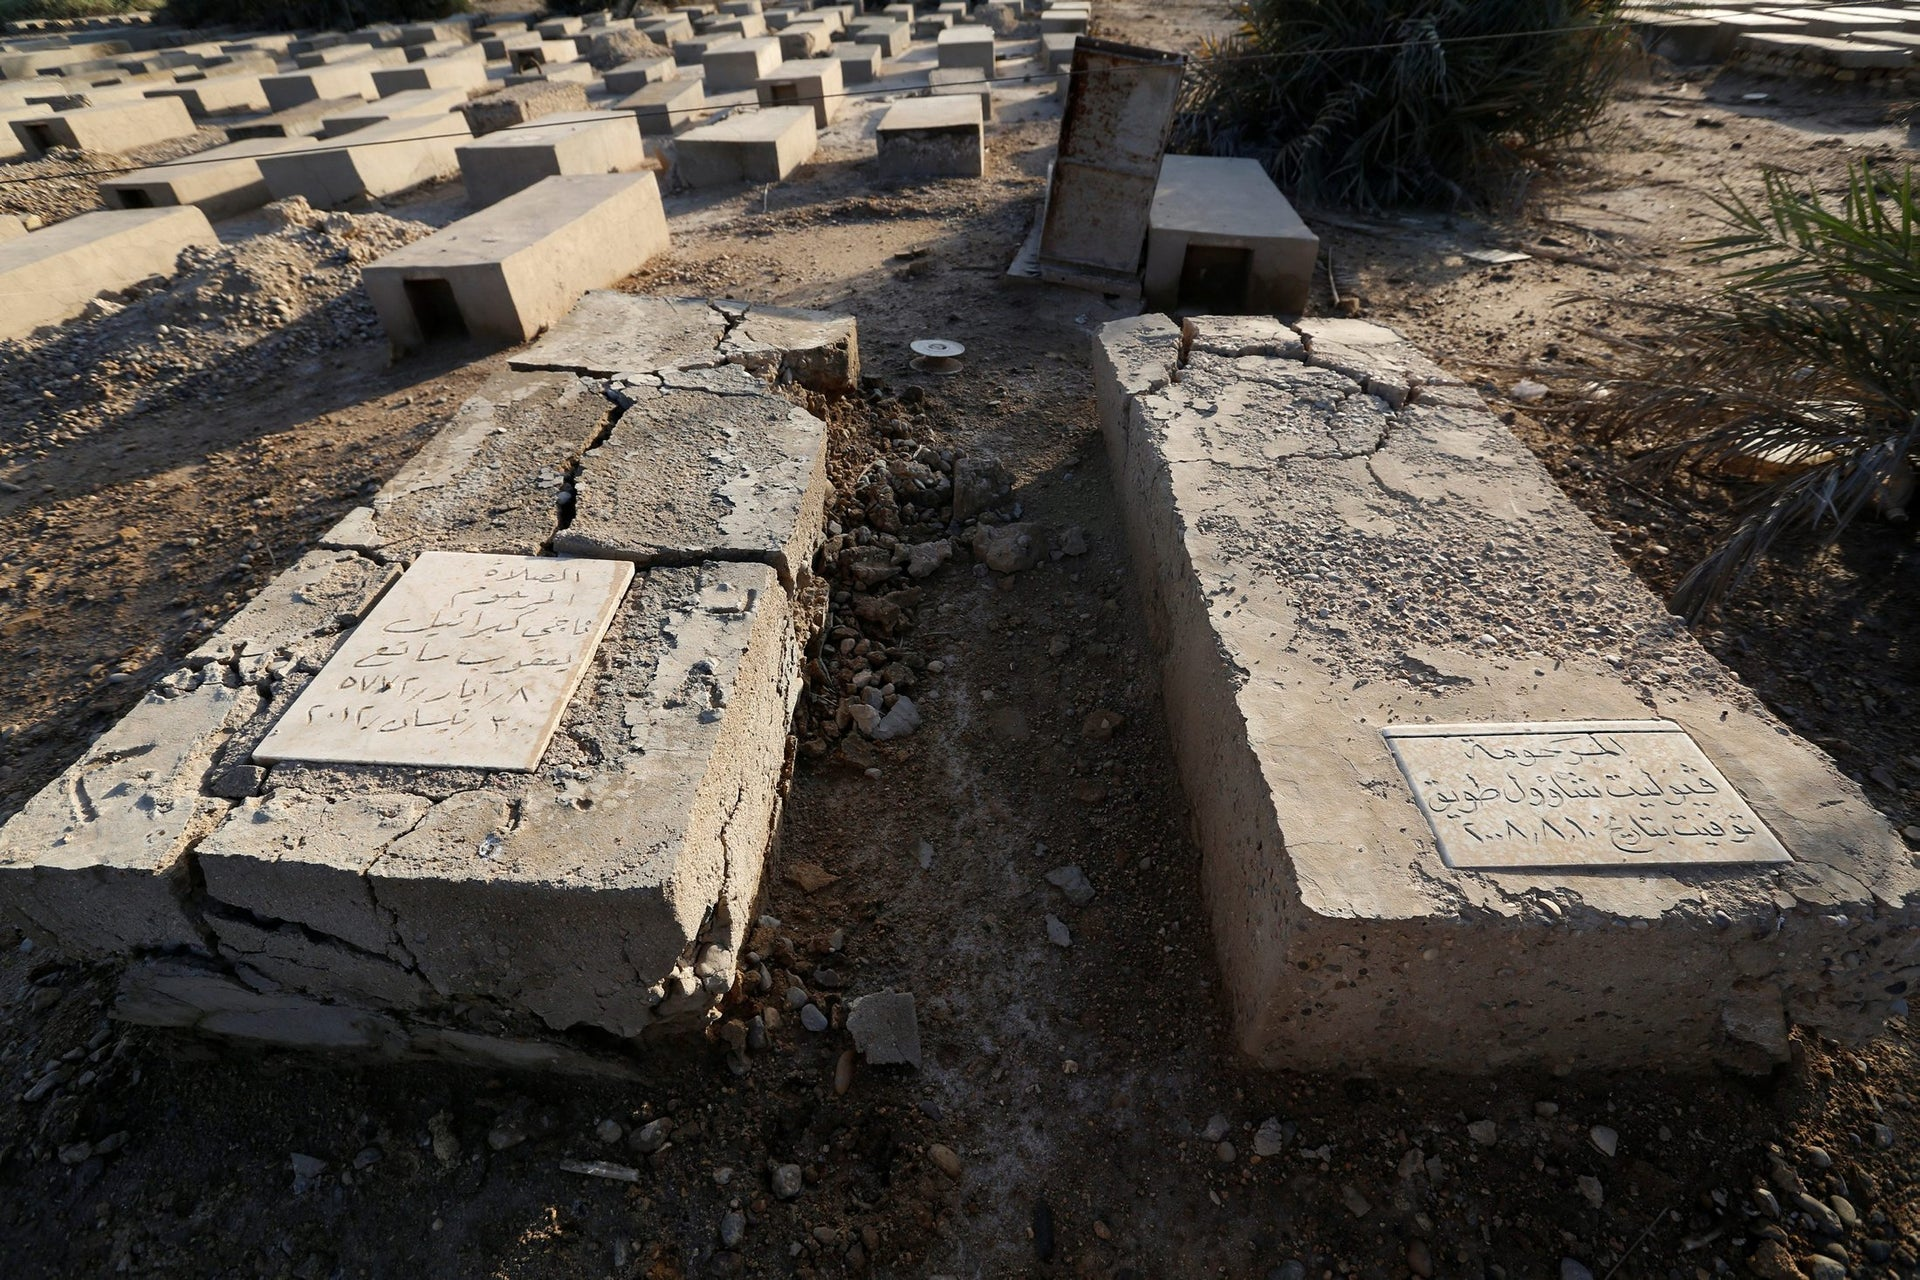 A tomb of a nurse Violet Saul (R), who was buried in 2008, is seen at a Jewish cemetery in the Sadr City district of Baghdad, Iraq April 1, 2018.